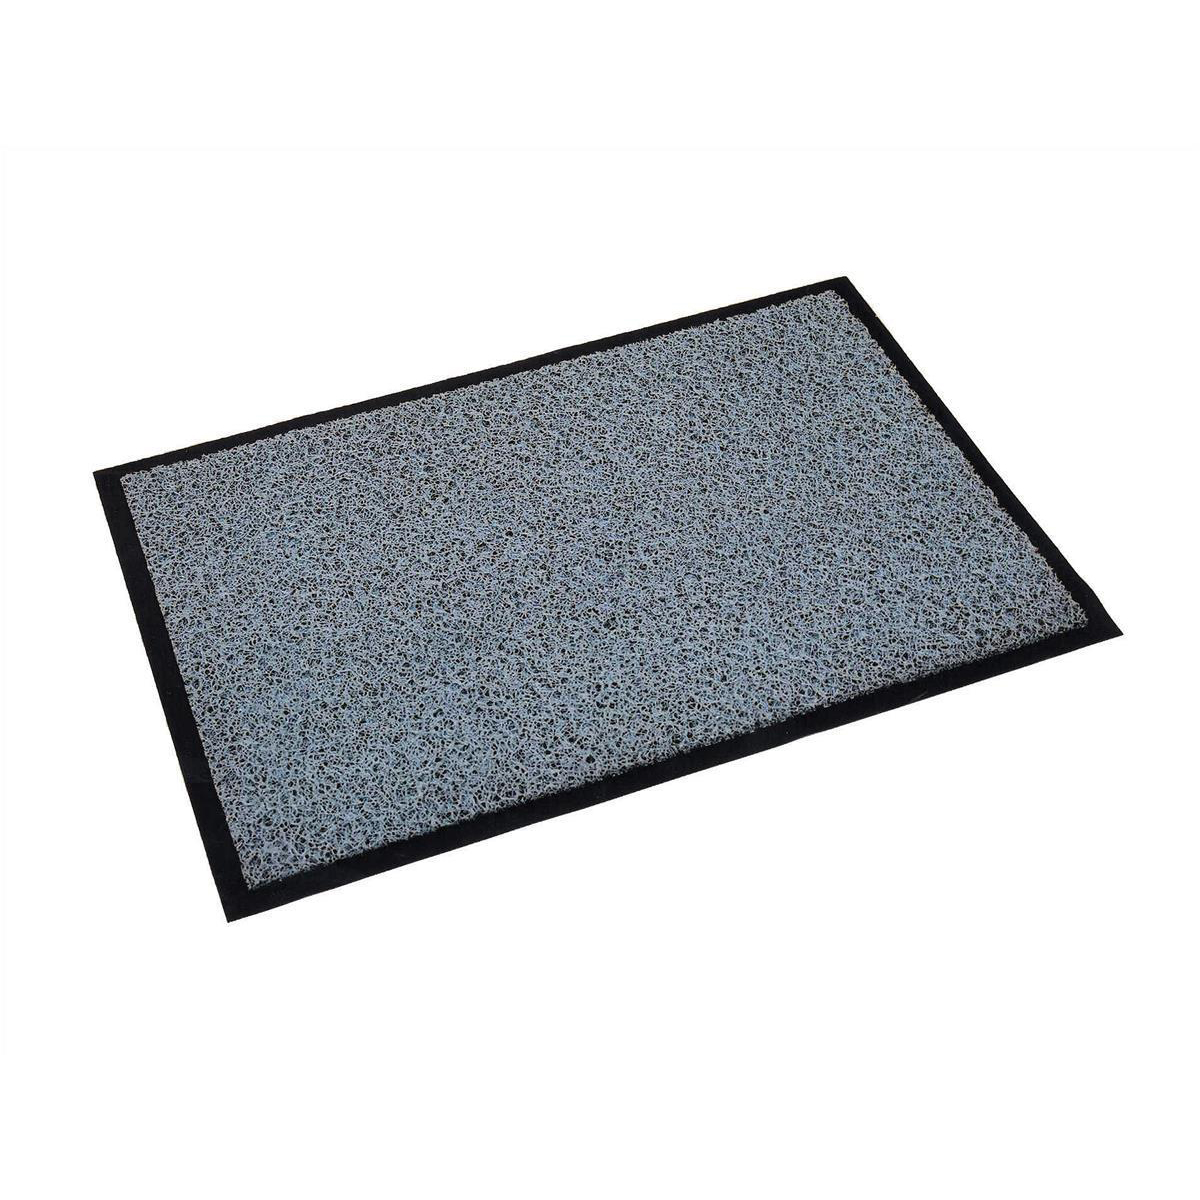 Doortex Twistermat Outdoor Mat Vinyl Fibre Surface Vinyl Back 900x1500mm Storm Grey Ref FC490150TWISG